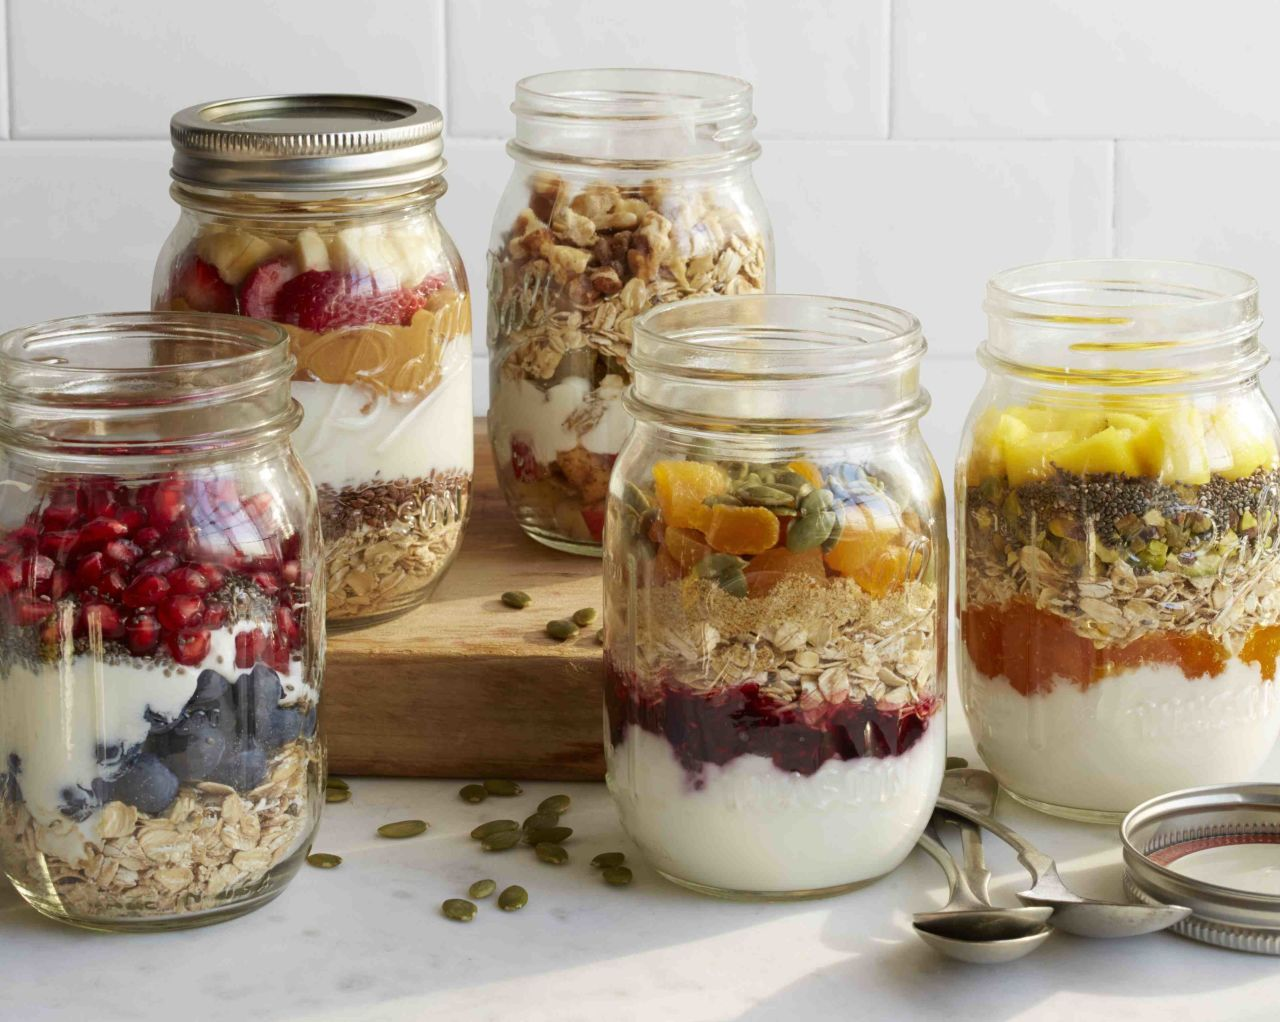 30 second breakfasts that are tastier than cereal pomegranate great make ahead oatmeal fruit and yogurt jars add your favorite liquid ccuart Choice Image